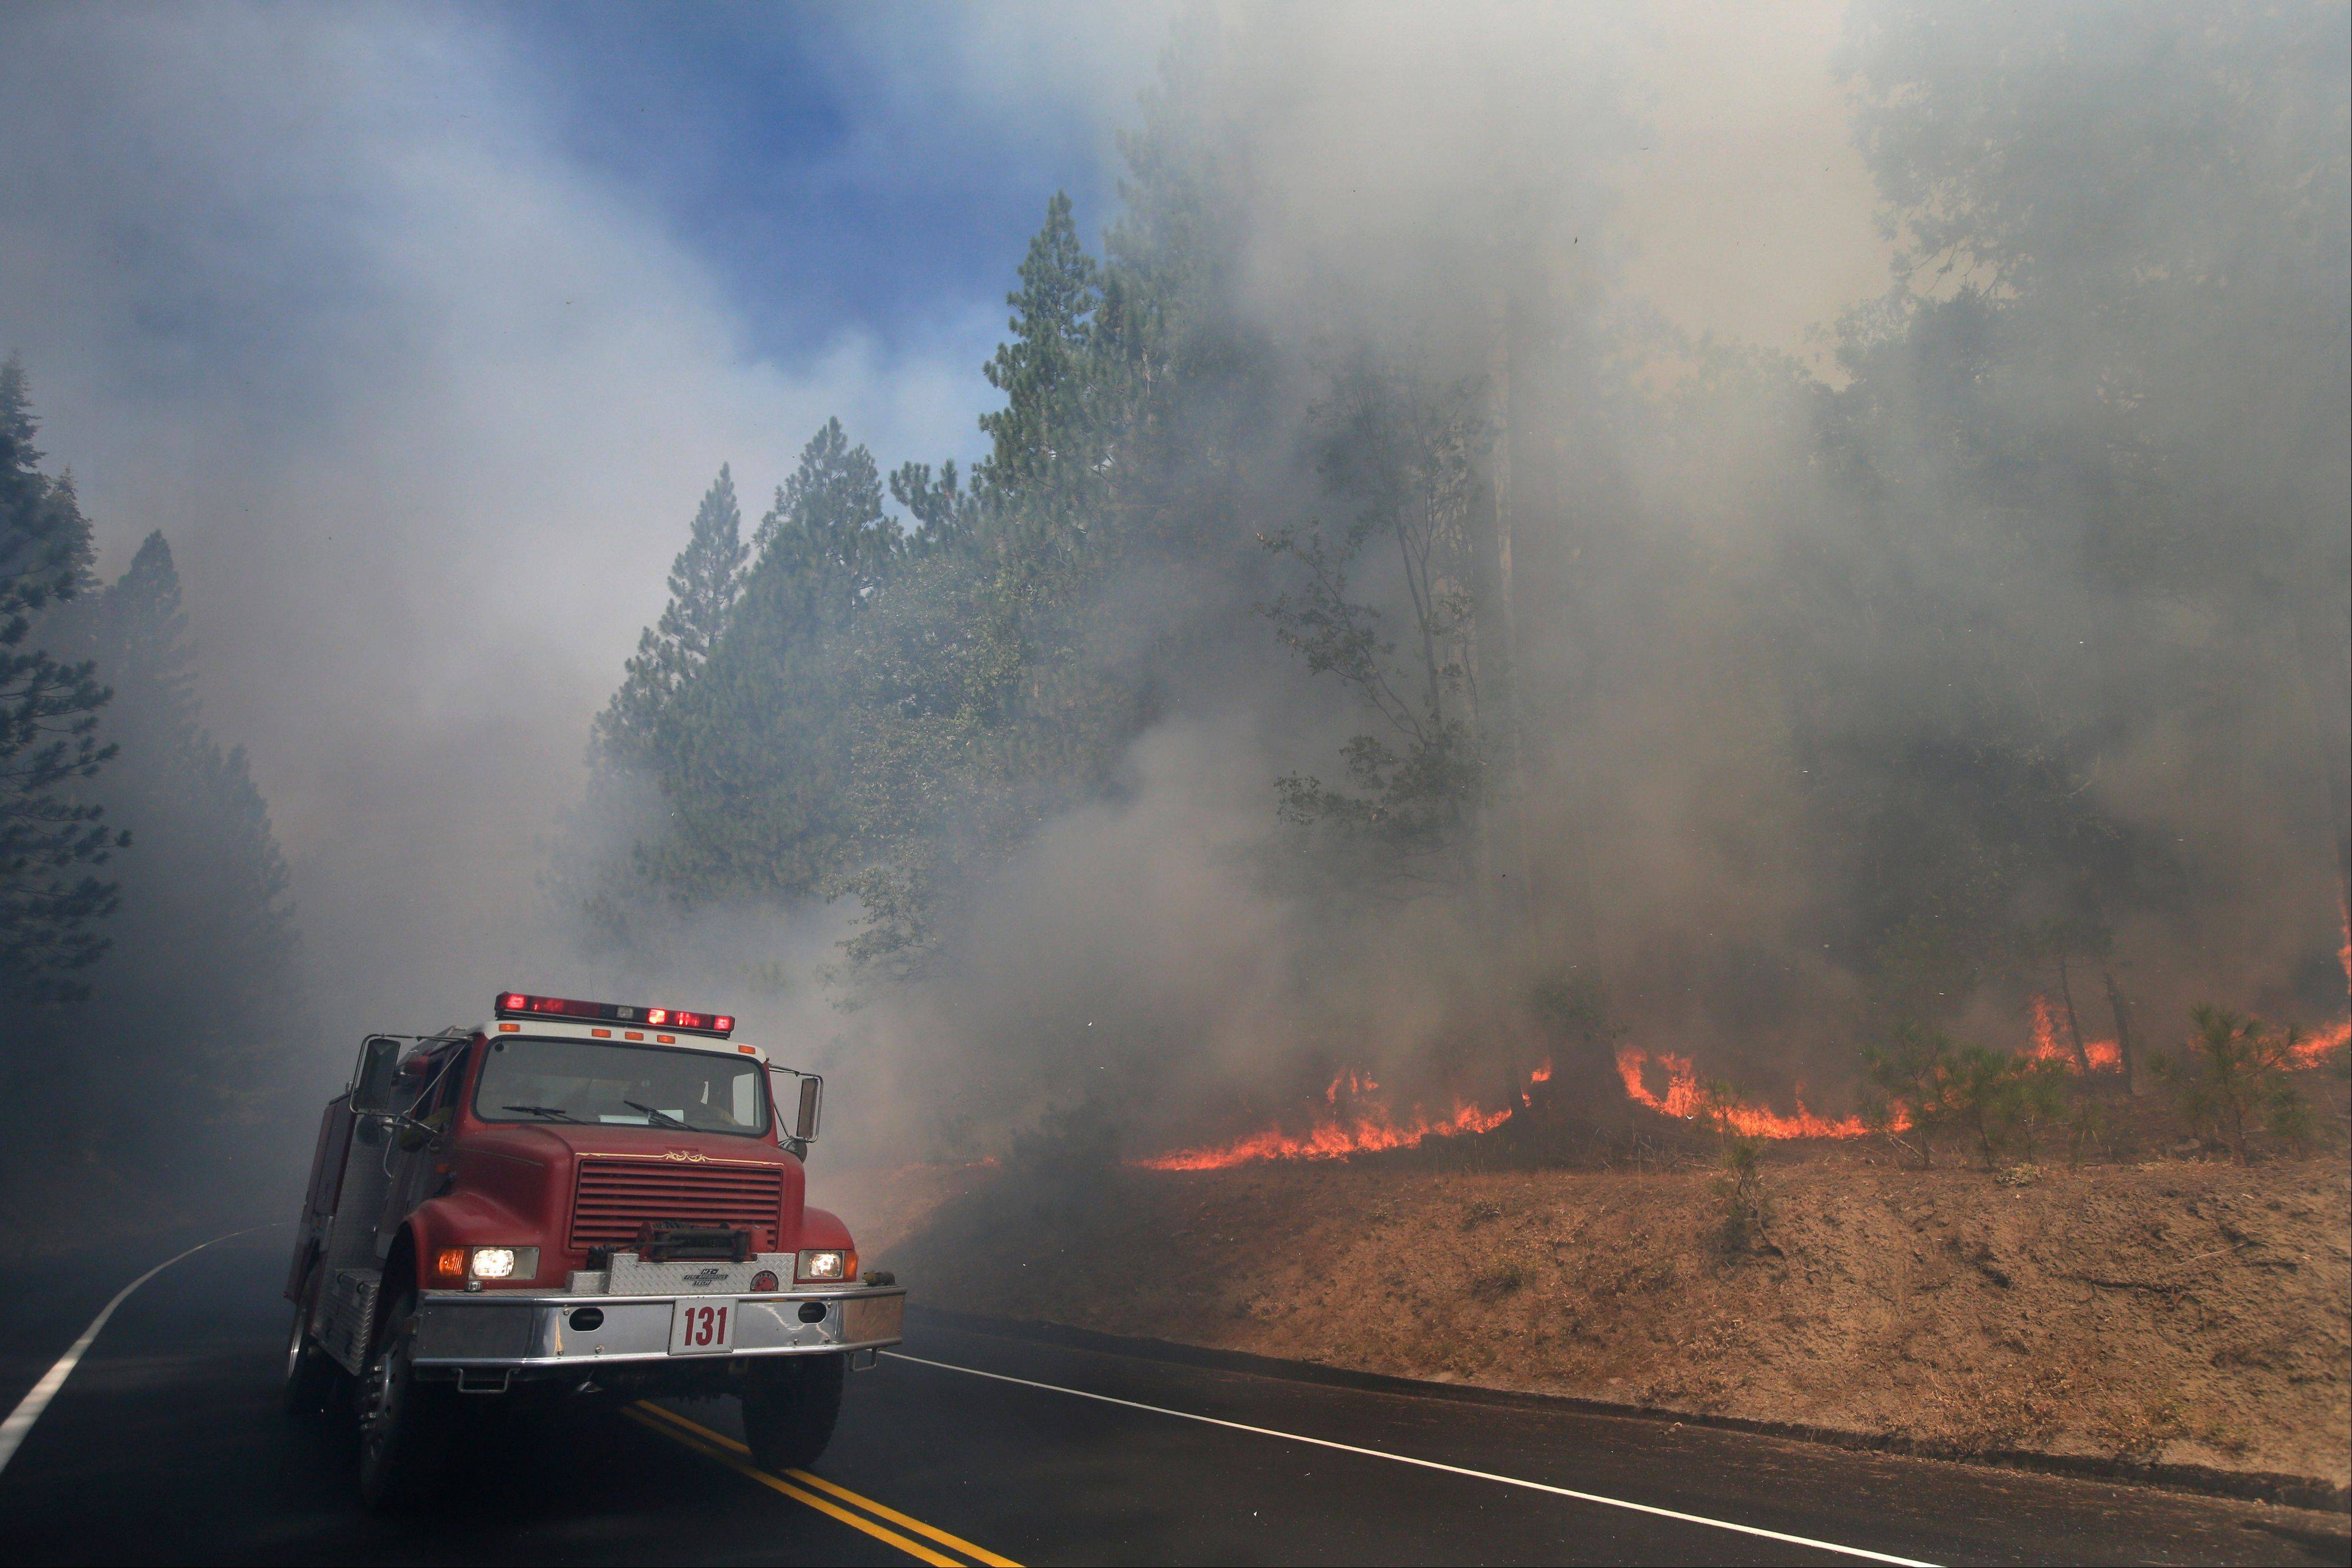 A fire truck drives past burning trees as firefighters continue to battle the Rim Fire near Yosemite National Park, Calif., Monday. Crews working to contain one of California's largest-ever wildfires gained some ground against the flames threatening San Francisco's water supply, several towns near Yosemite National Park and historic giant sequoias.